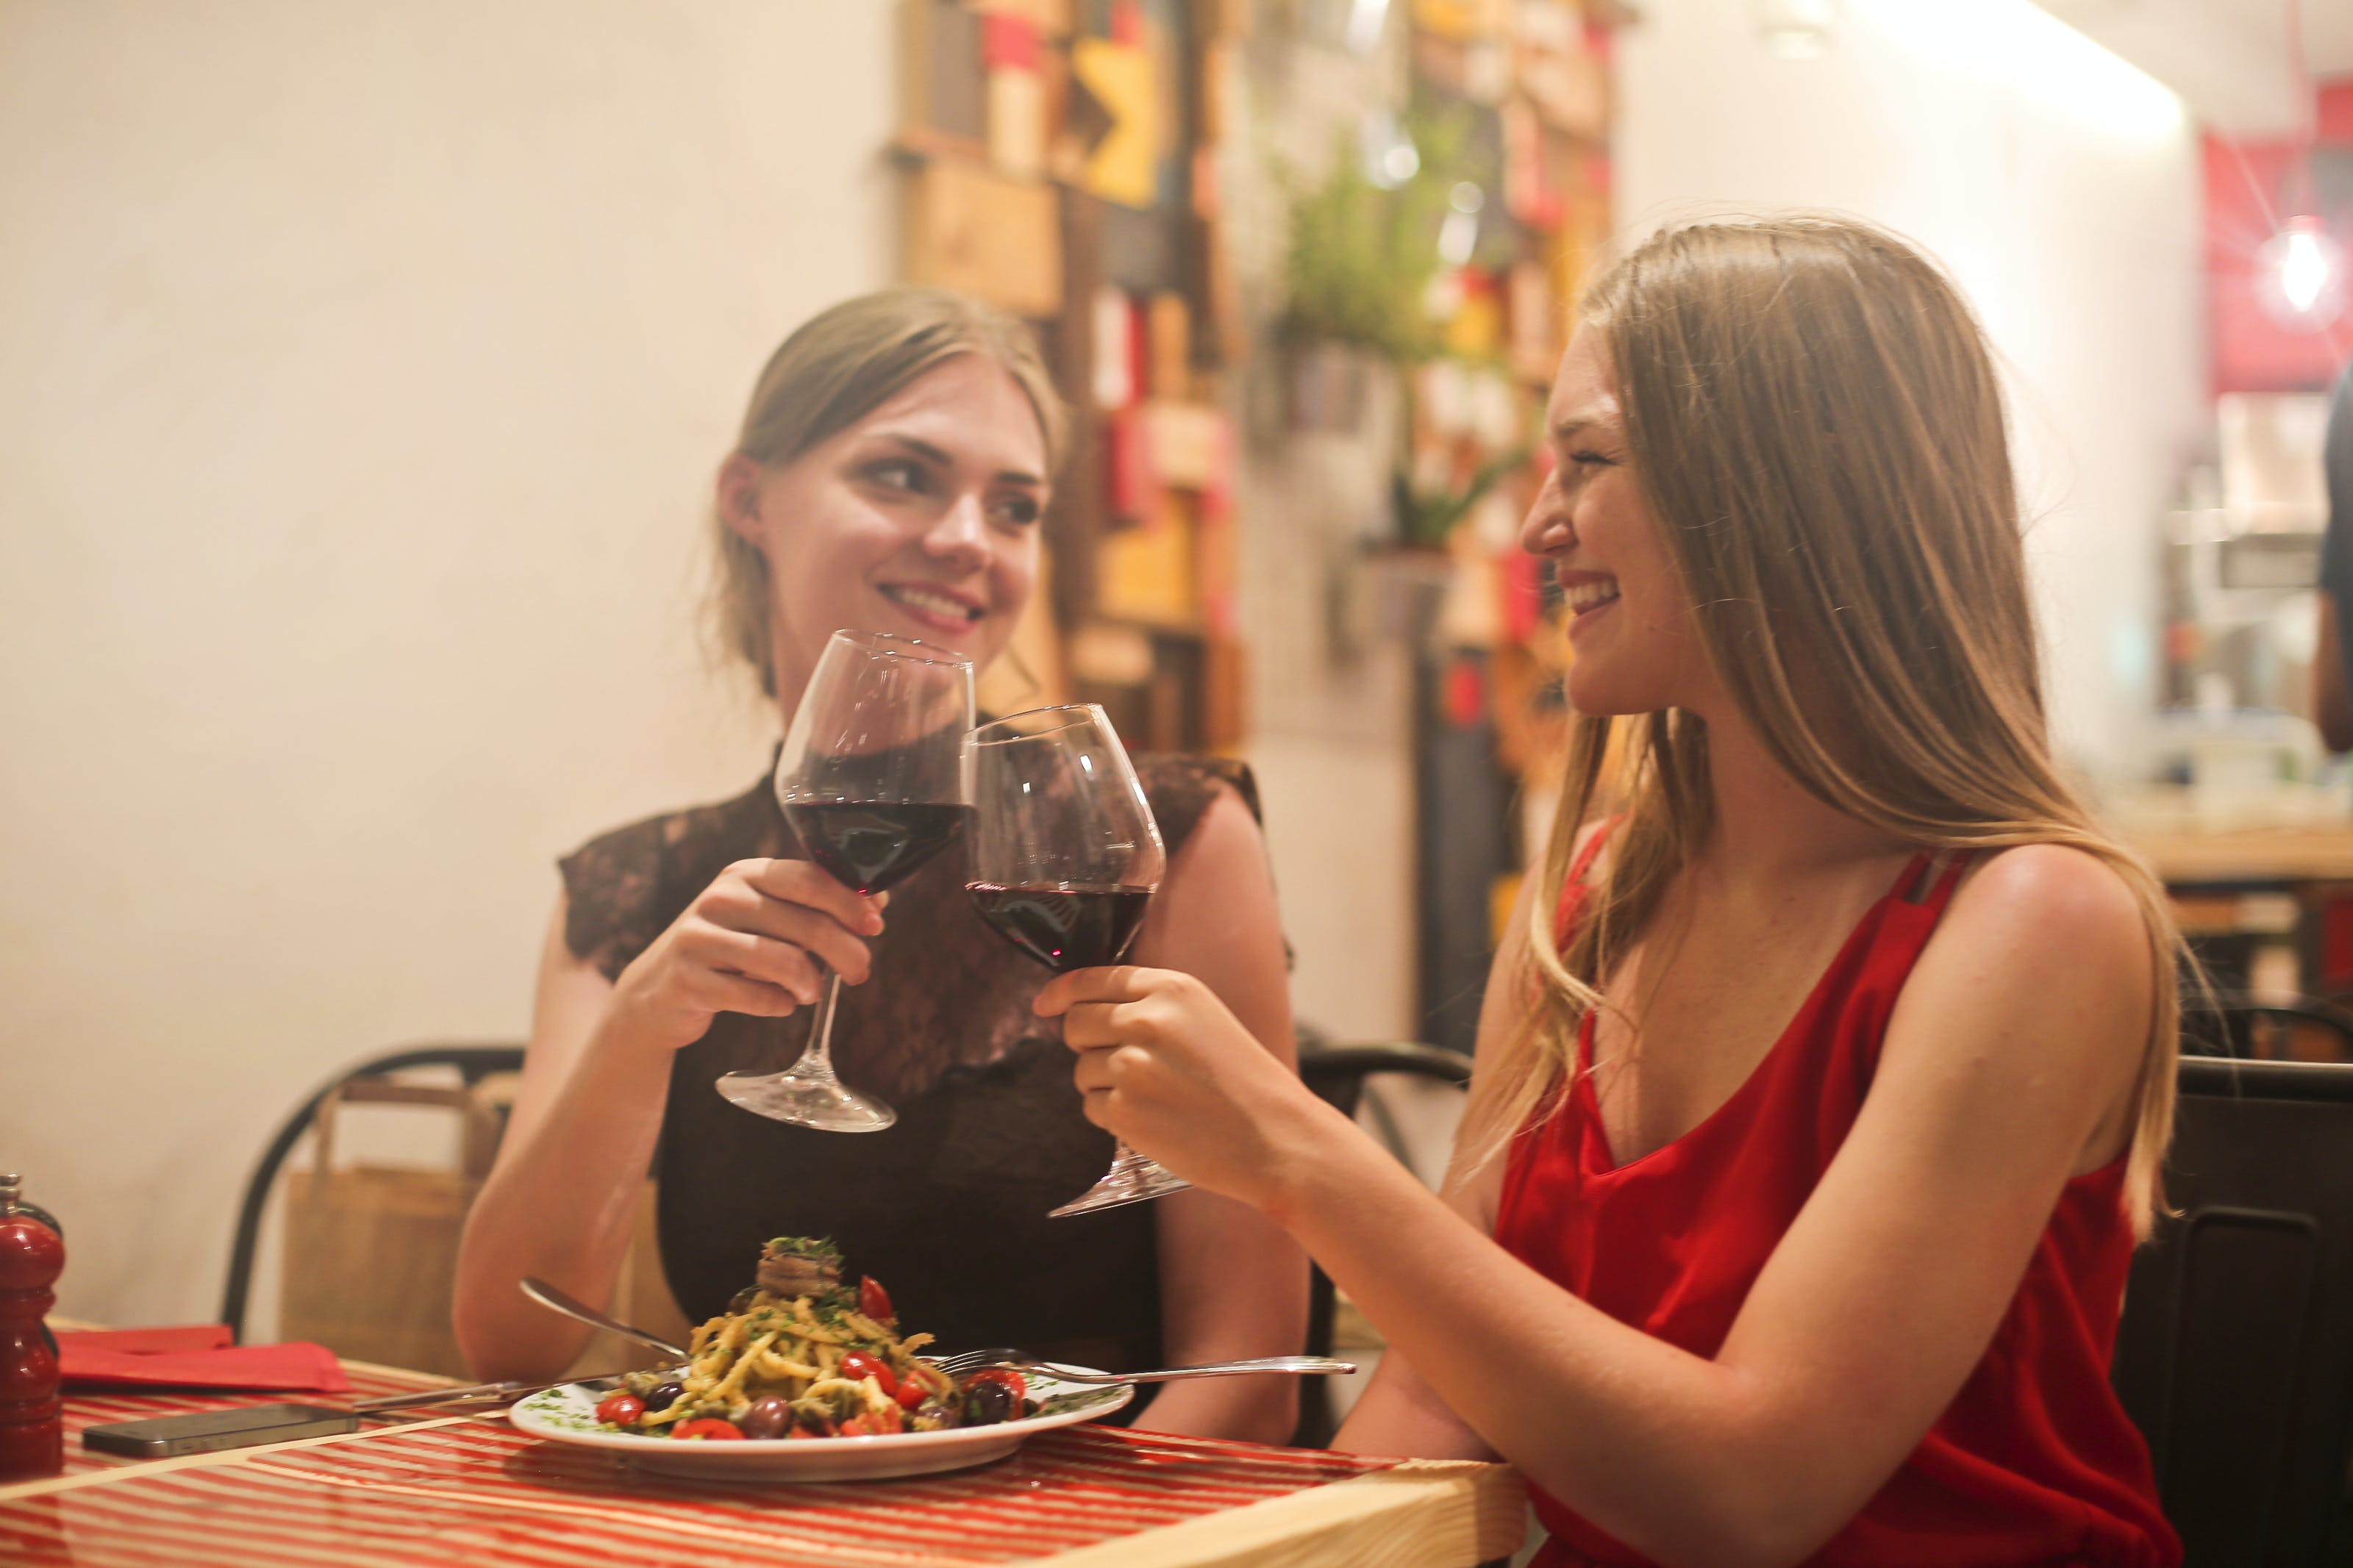 Two Women Holding Long-stem Wine Glasses With Red Liquid